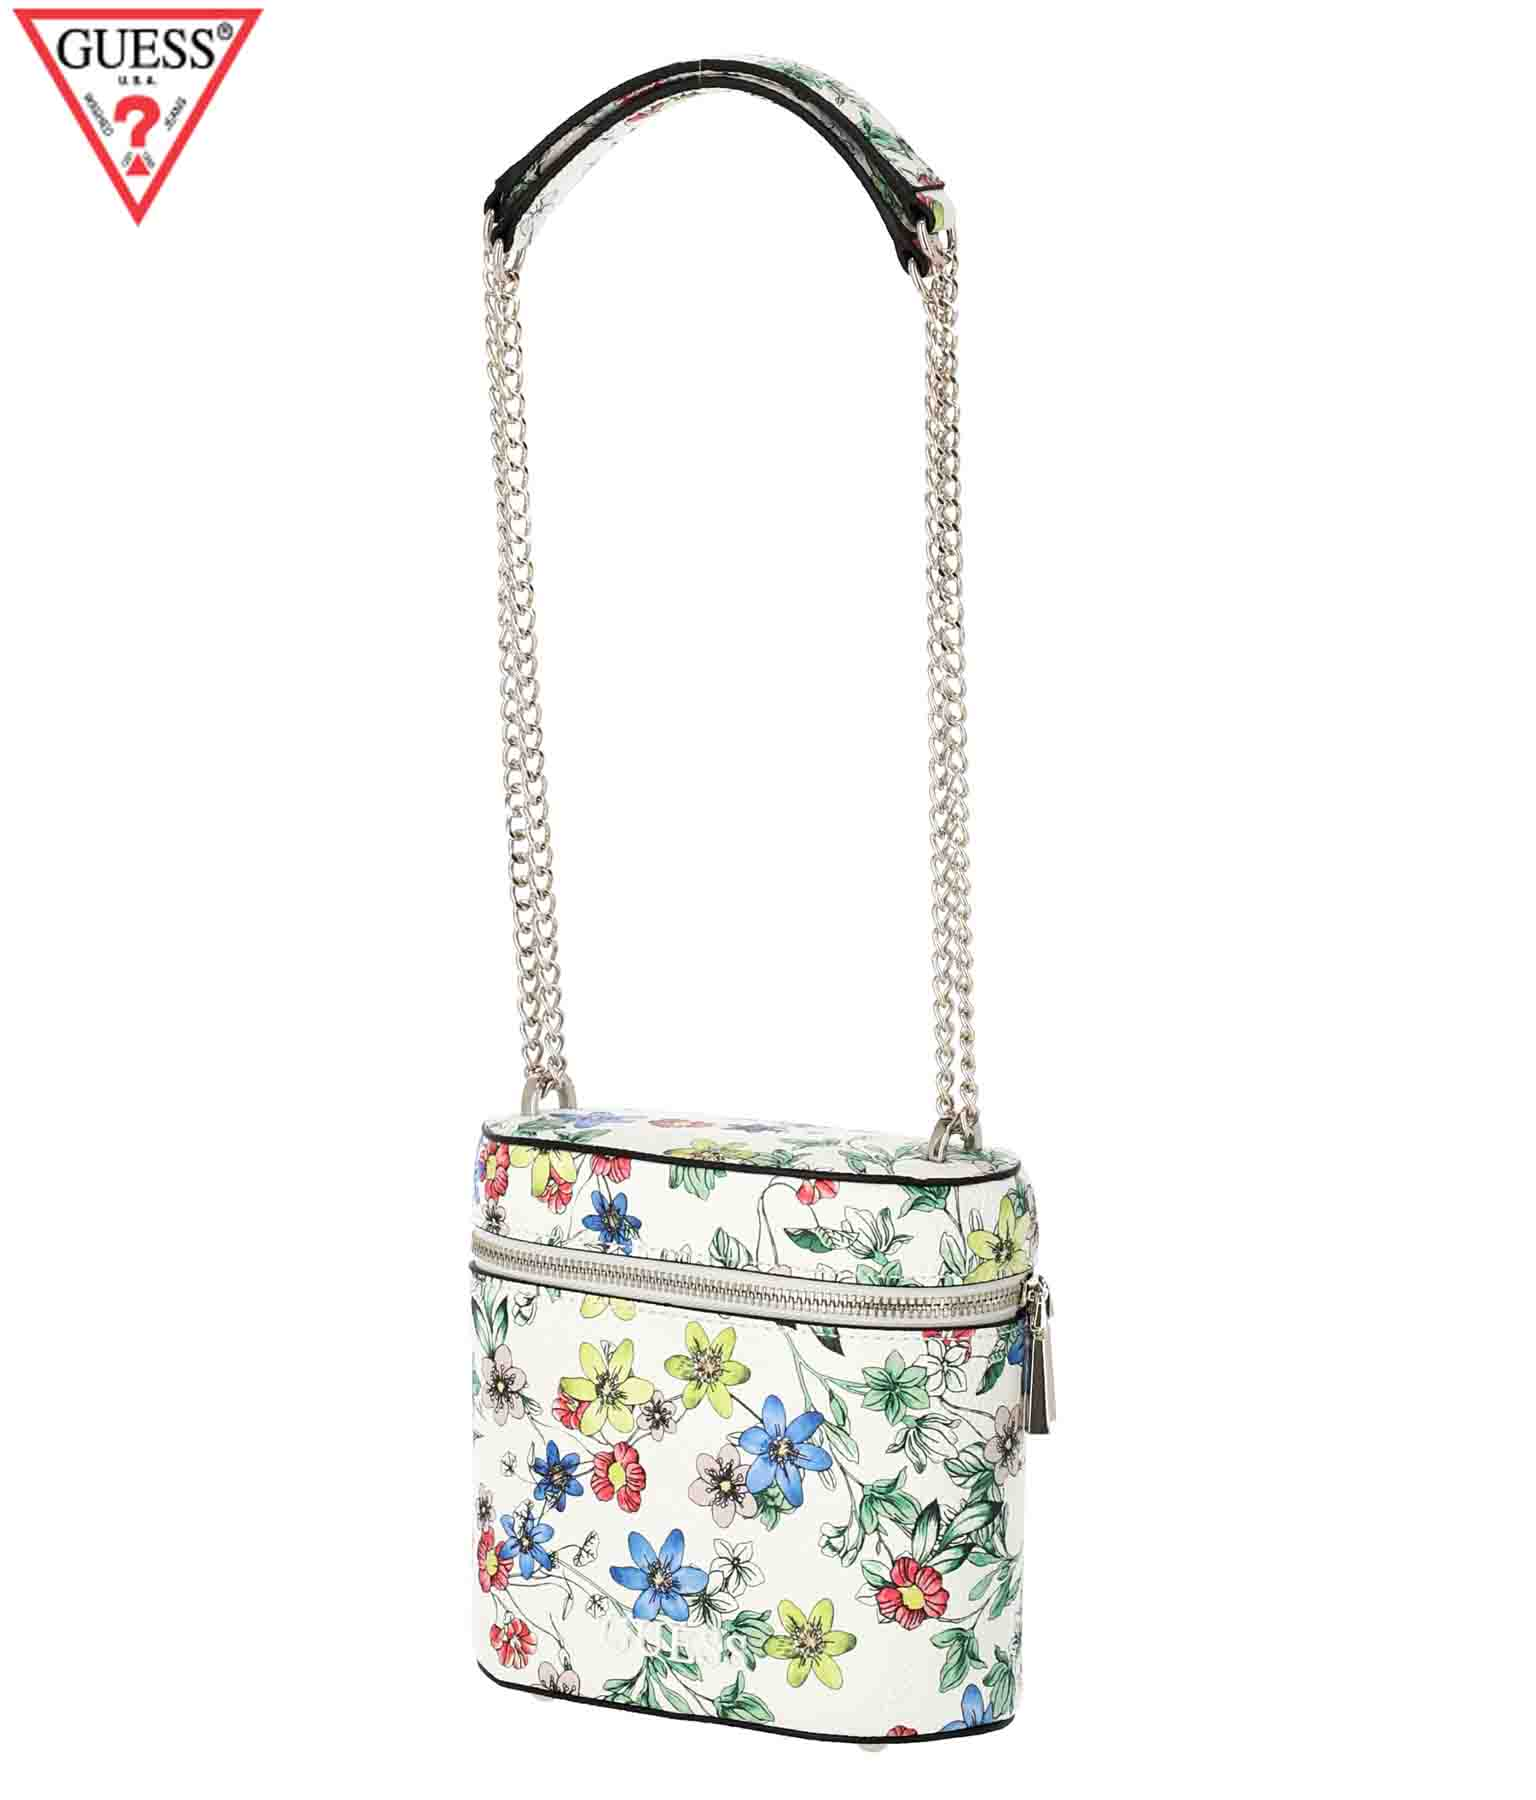 NEREA CANNISTER(バッグ・鞄・小物/ショルダーバッグ)   GUESS